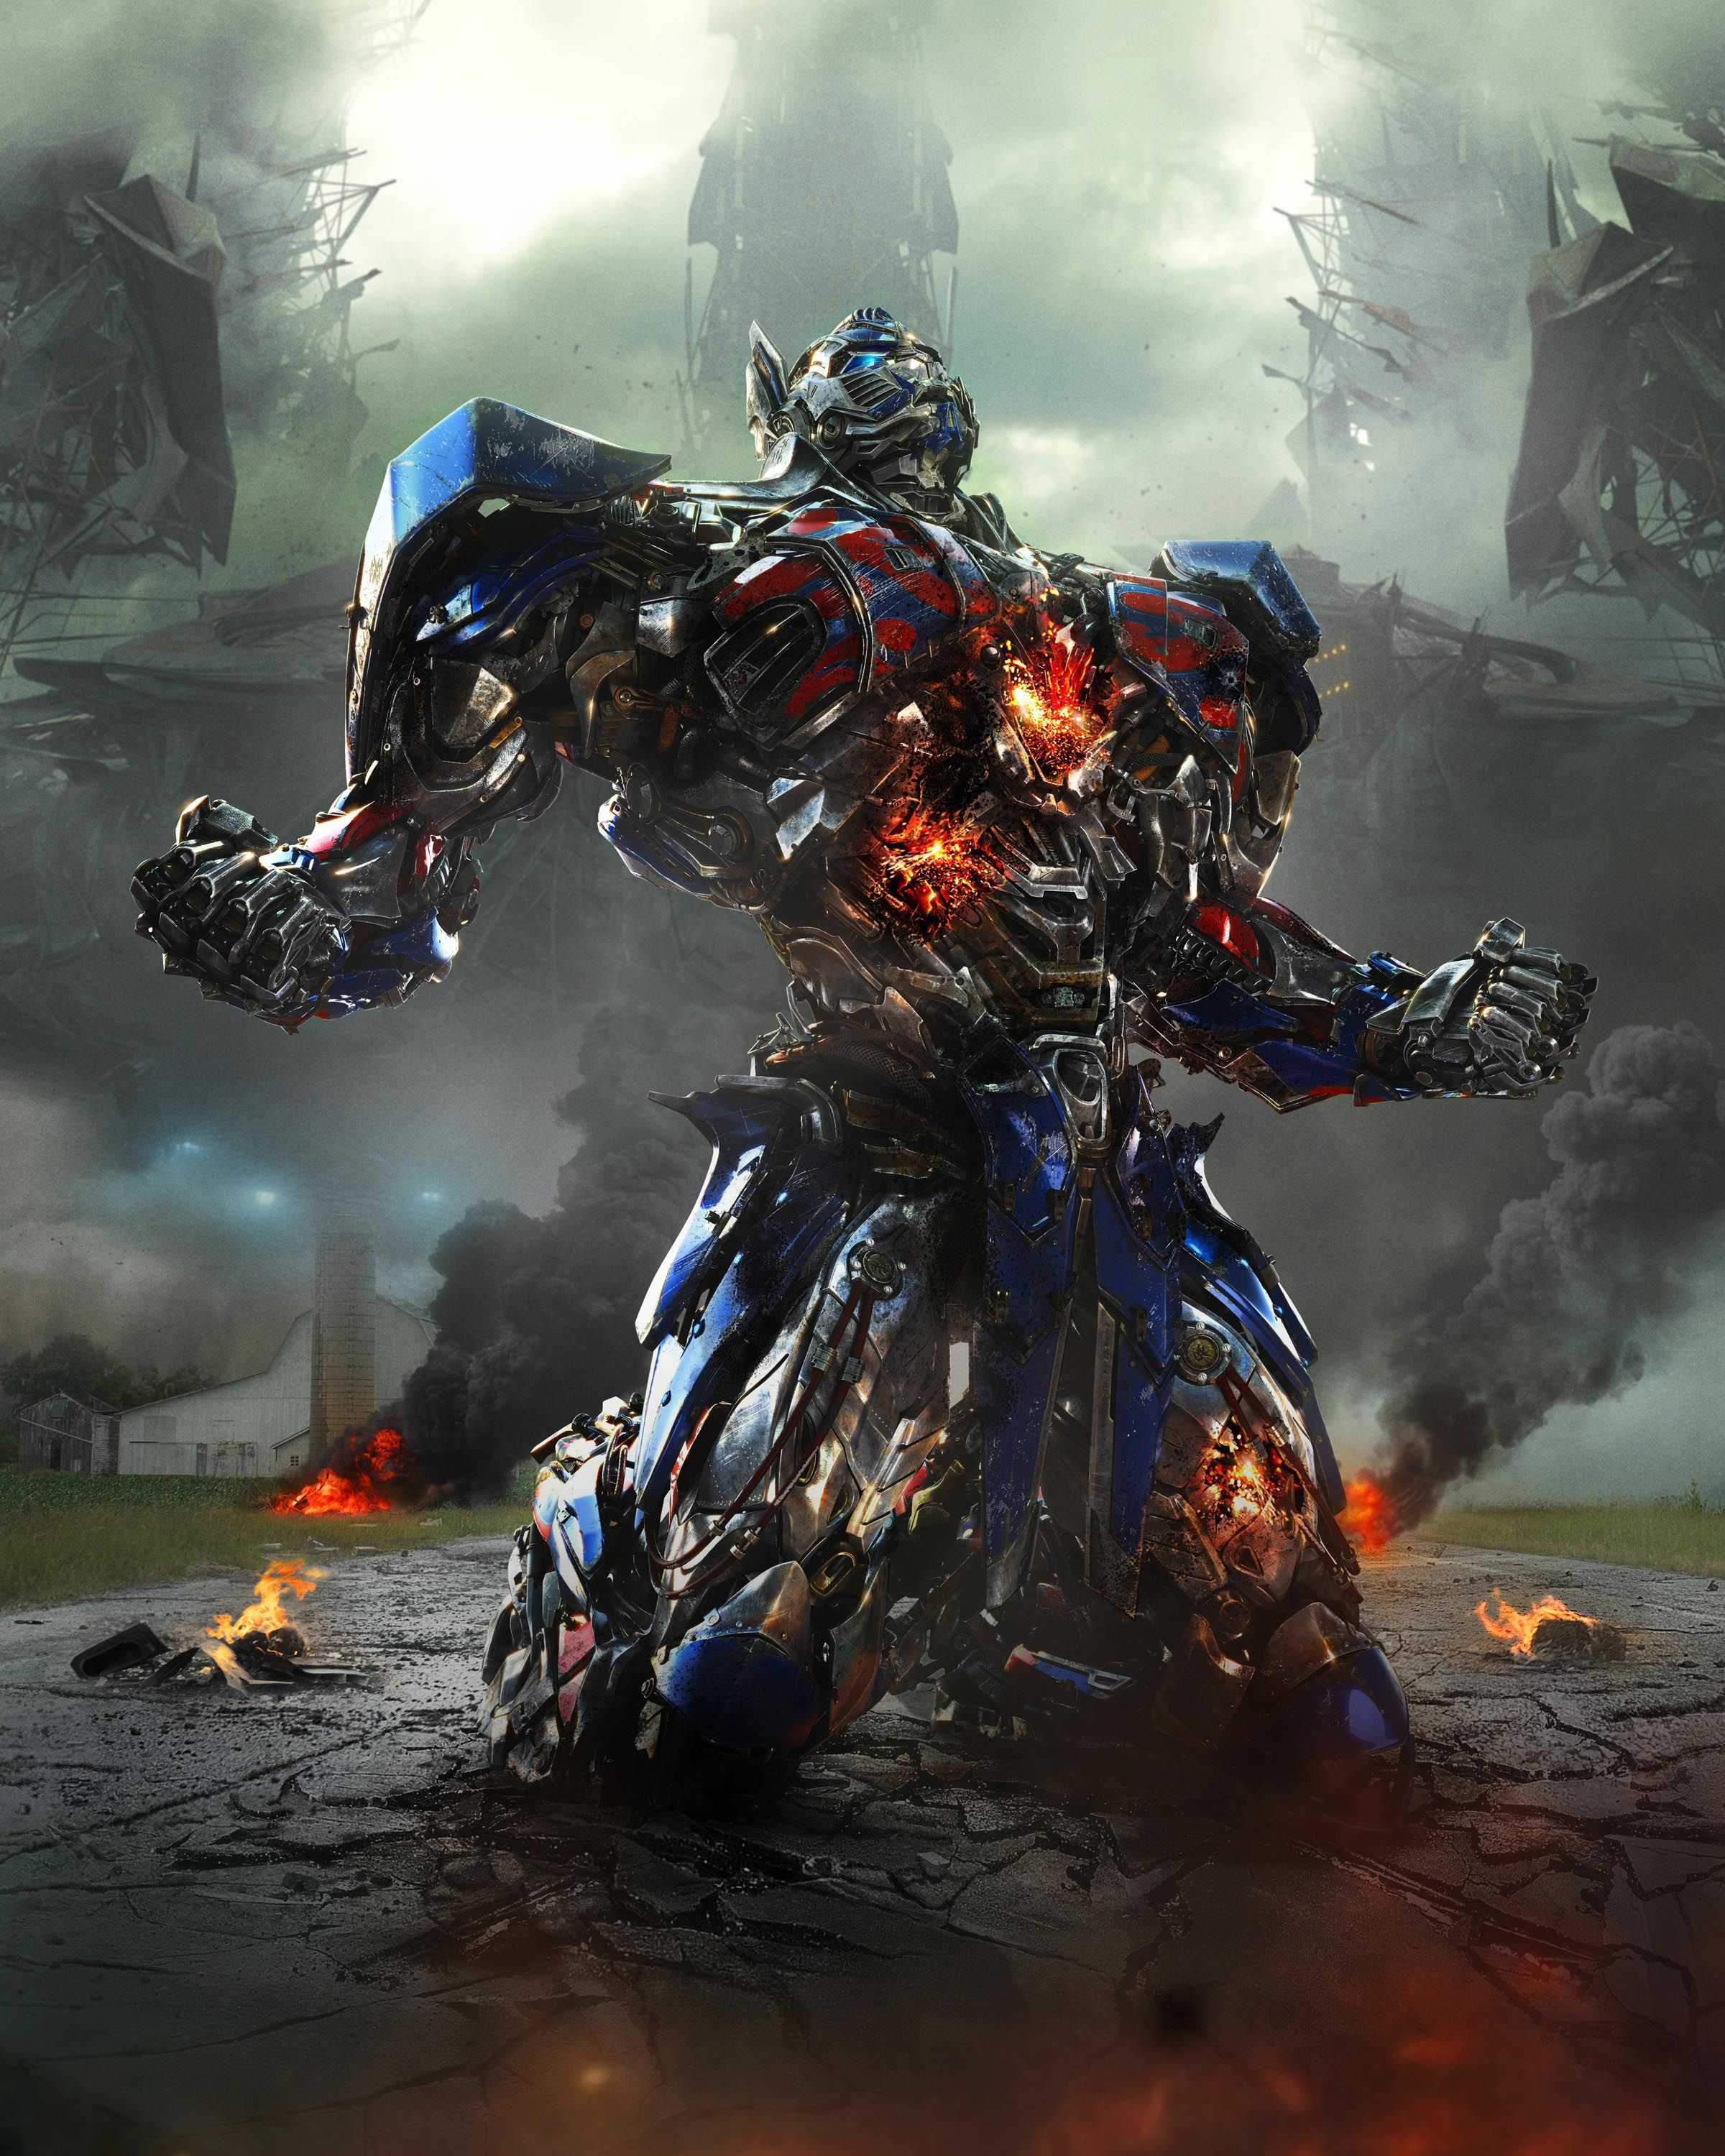 Transformers Sequels, Spinoffs Planned in Marvel-Style ...